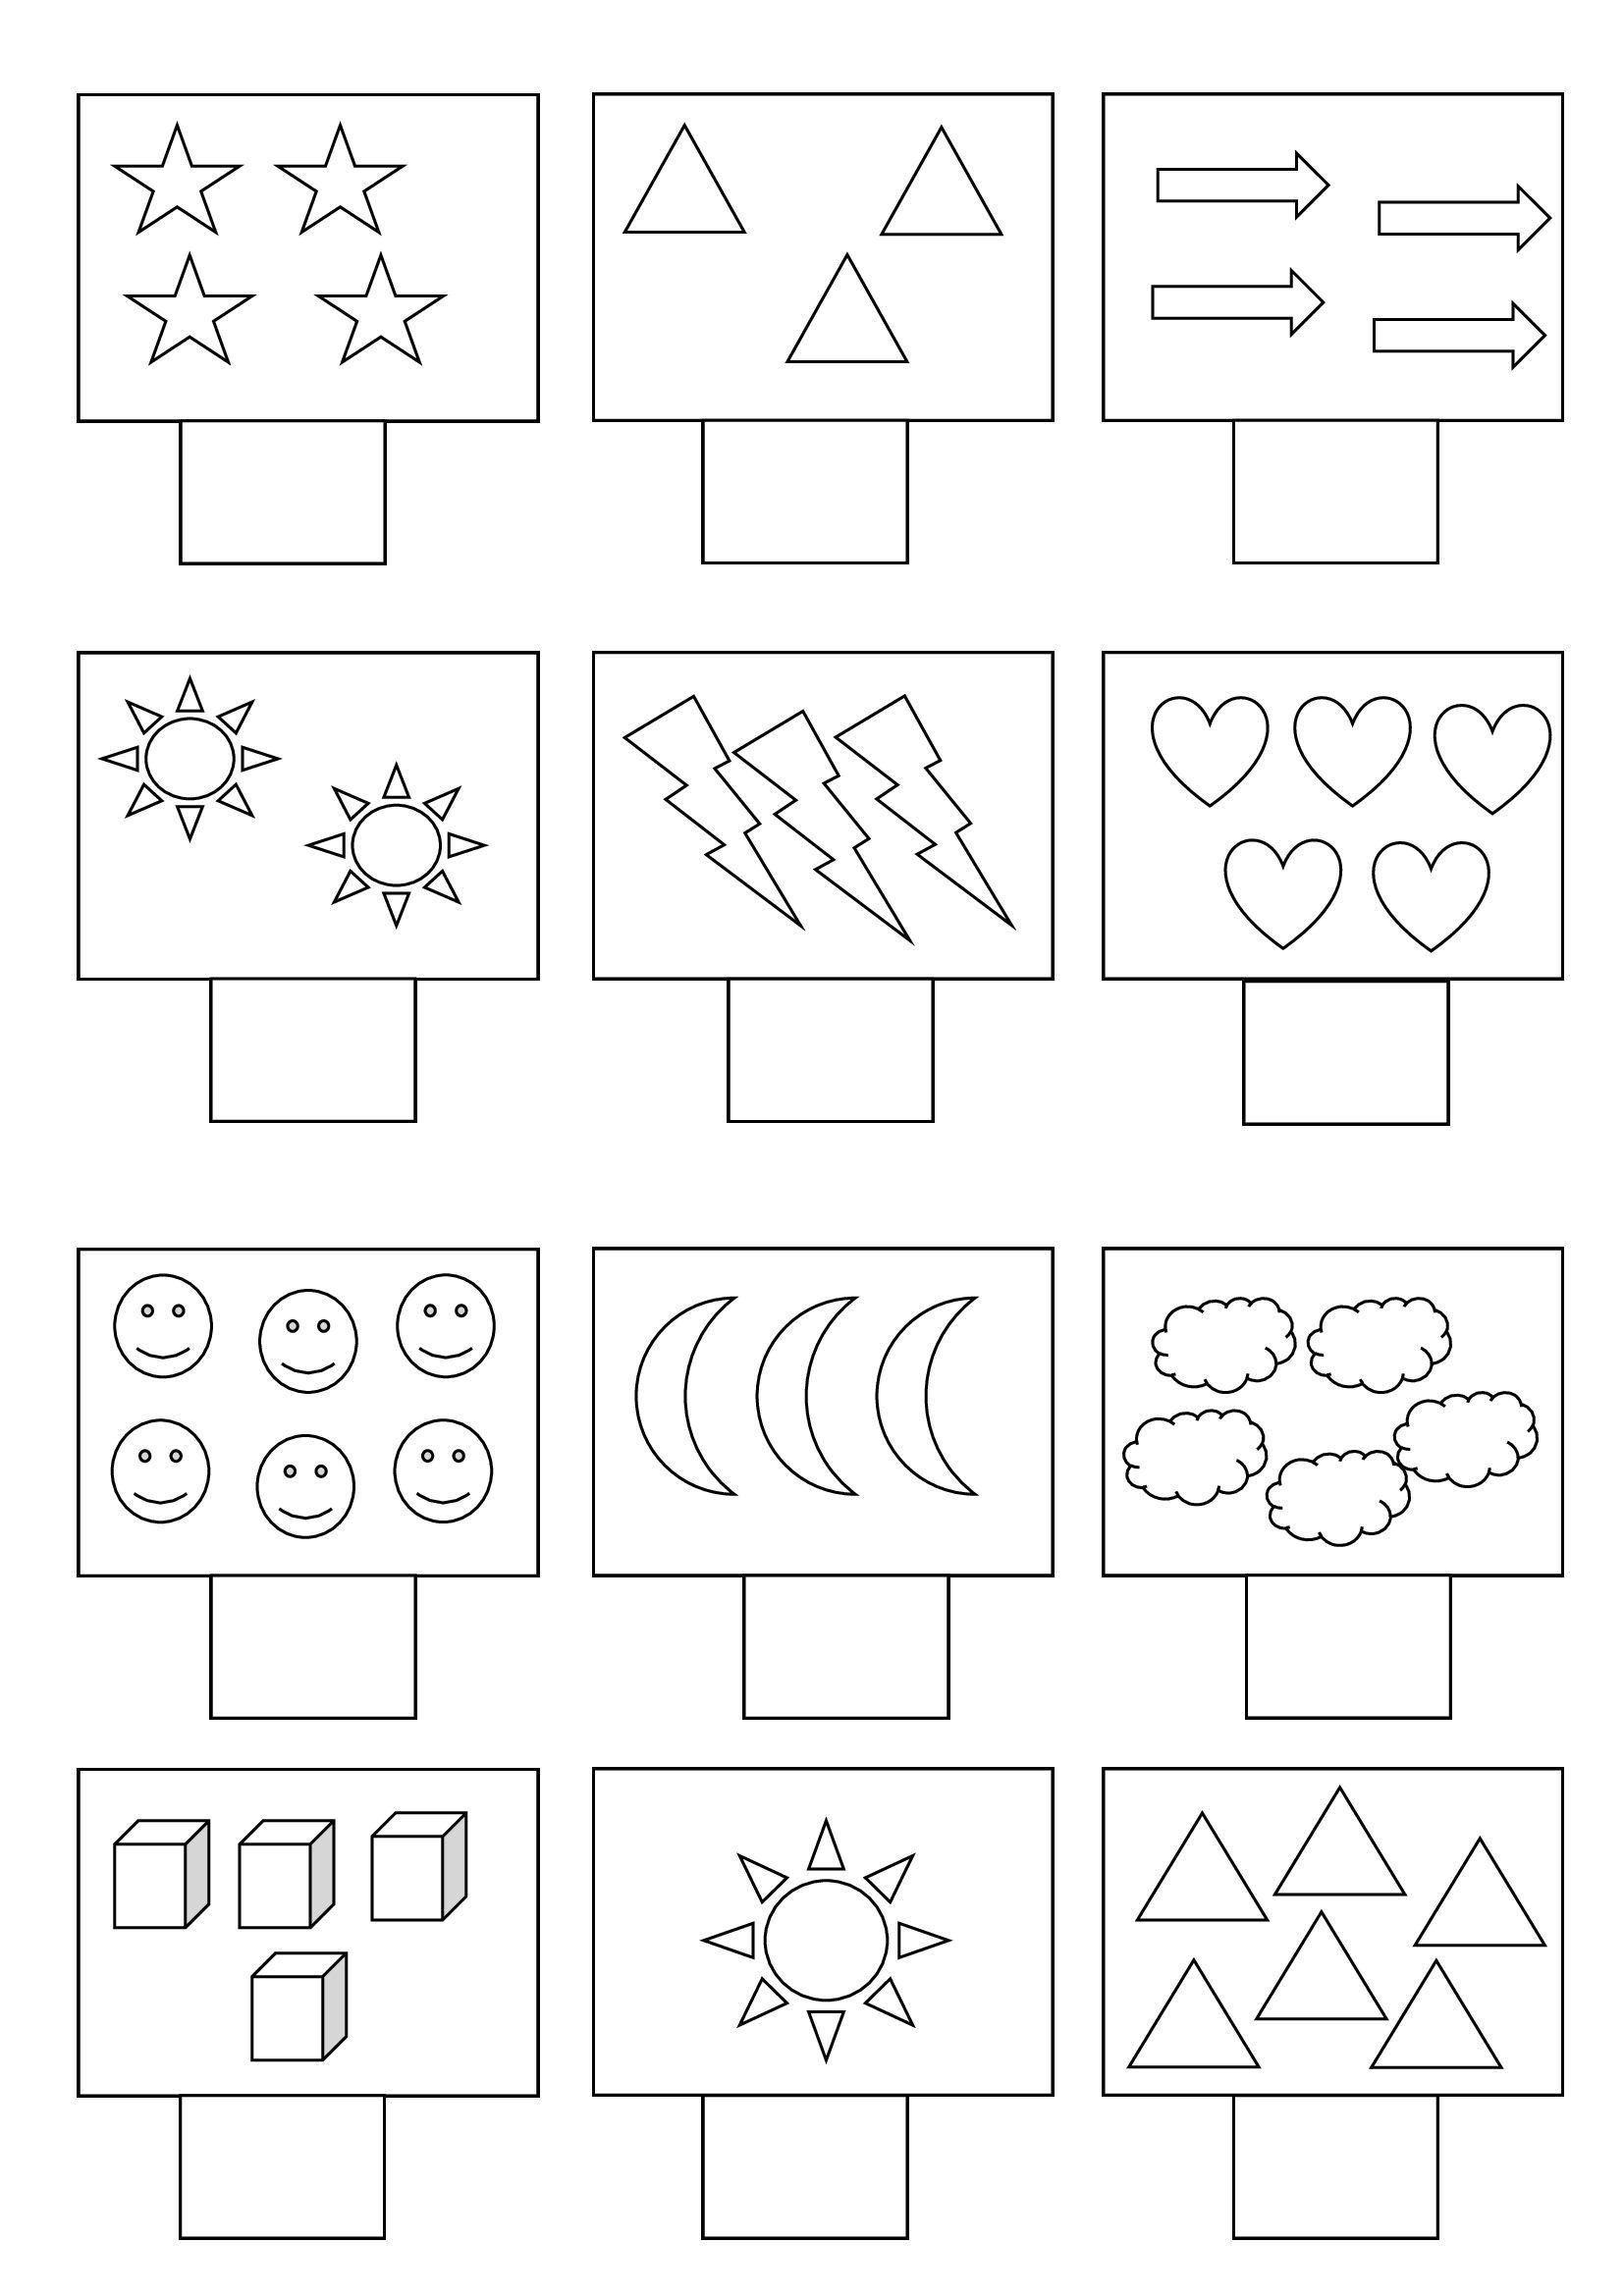 Kumon Printable Worksheets Free N N N N N